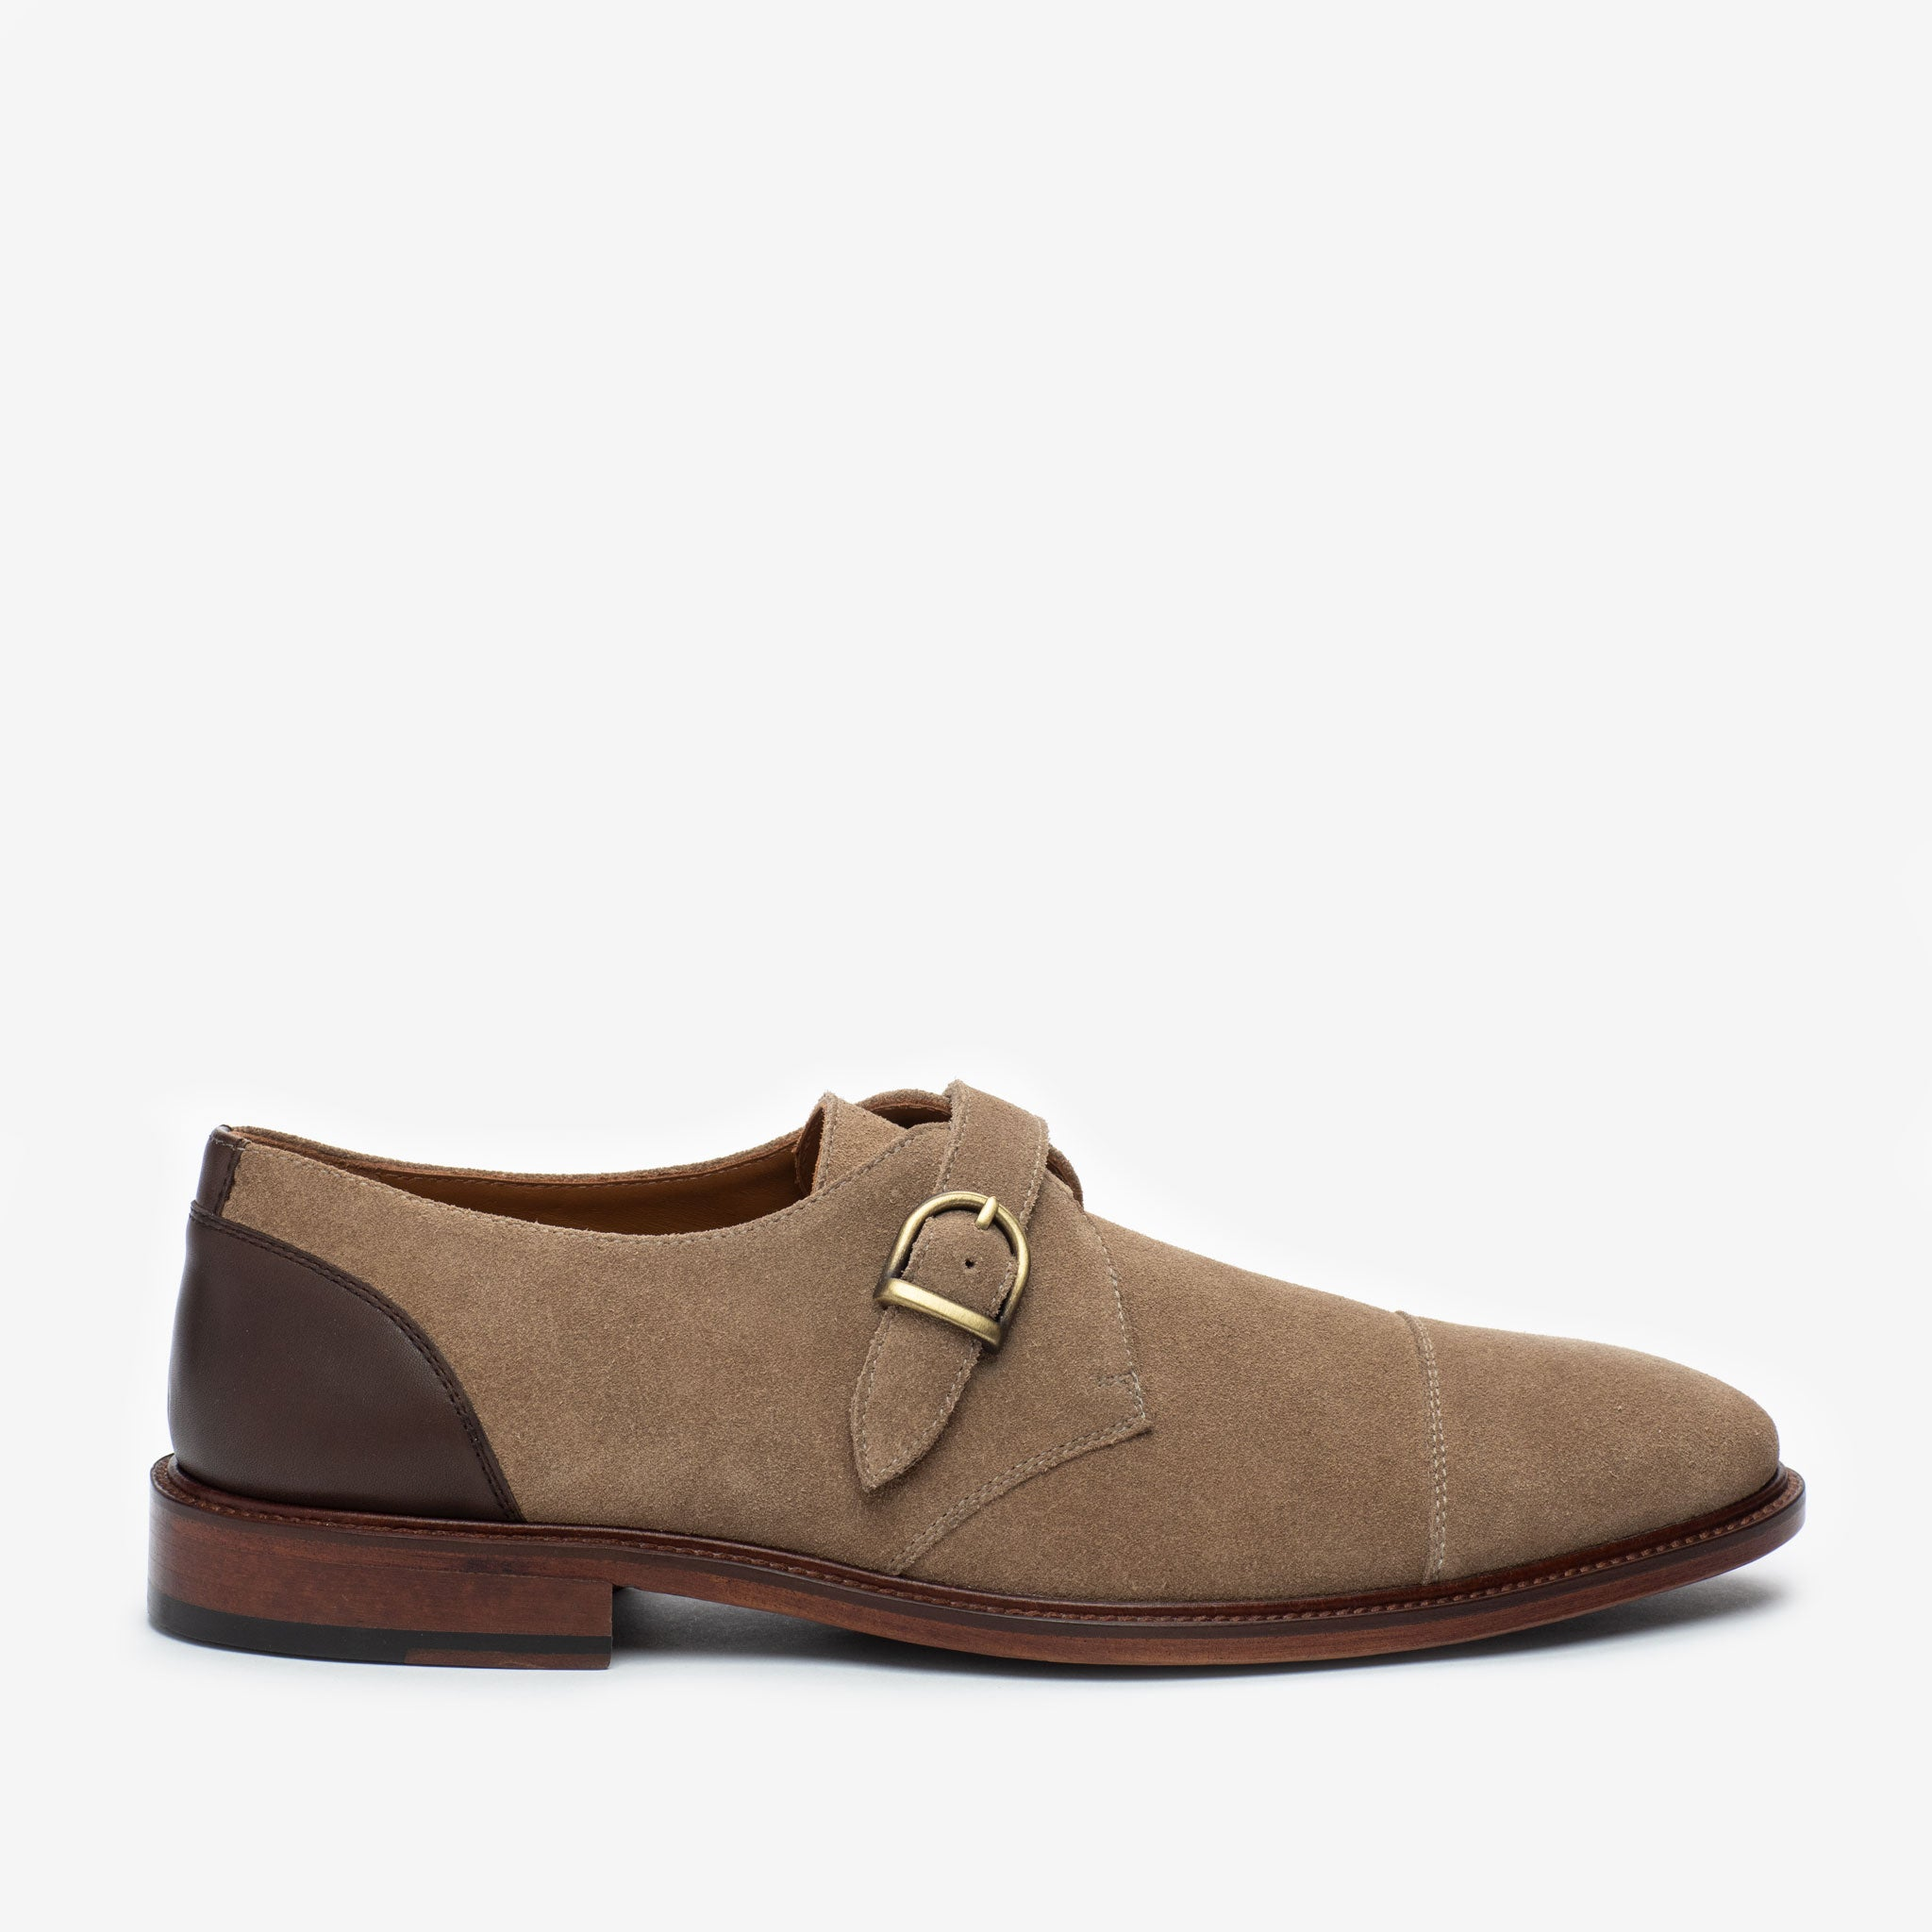 The Westminster Shoe in Beige